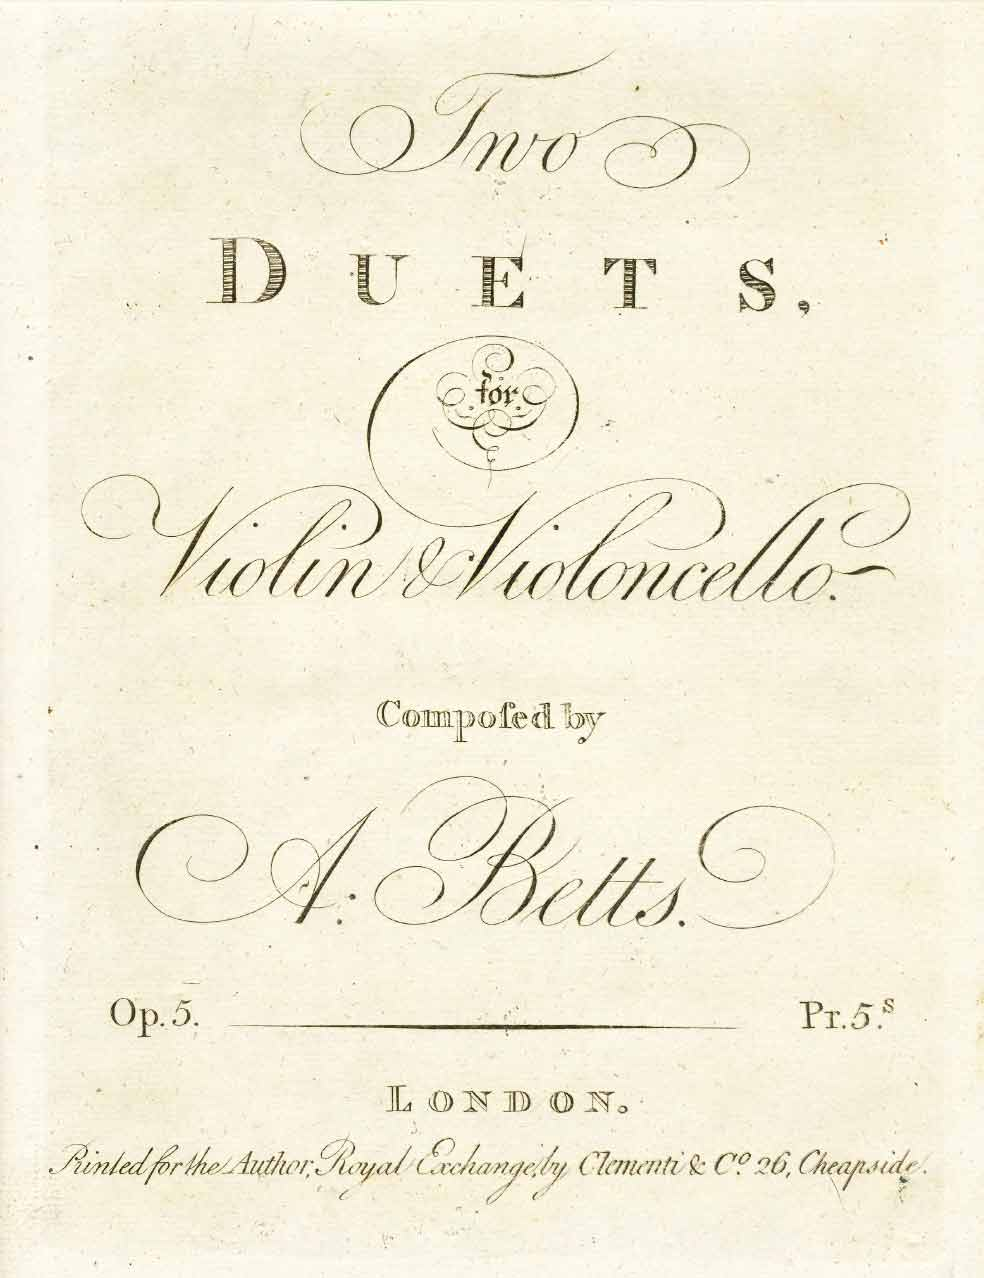 Betts: Duet for Violin and Cello, Op. 5, No. 2 in E-flat Major